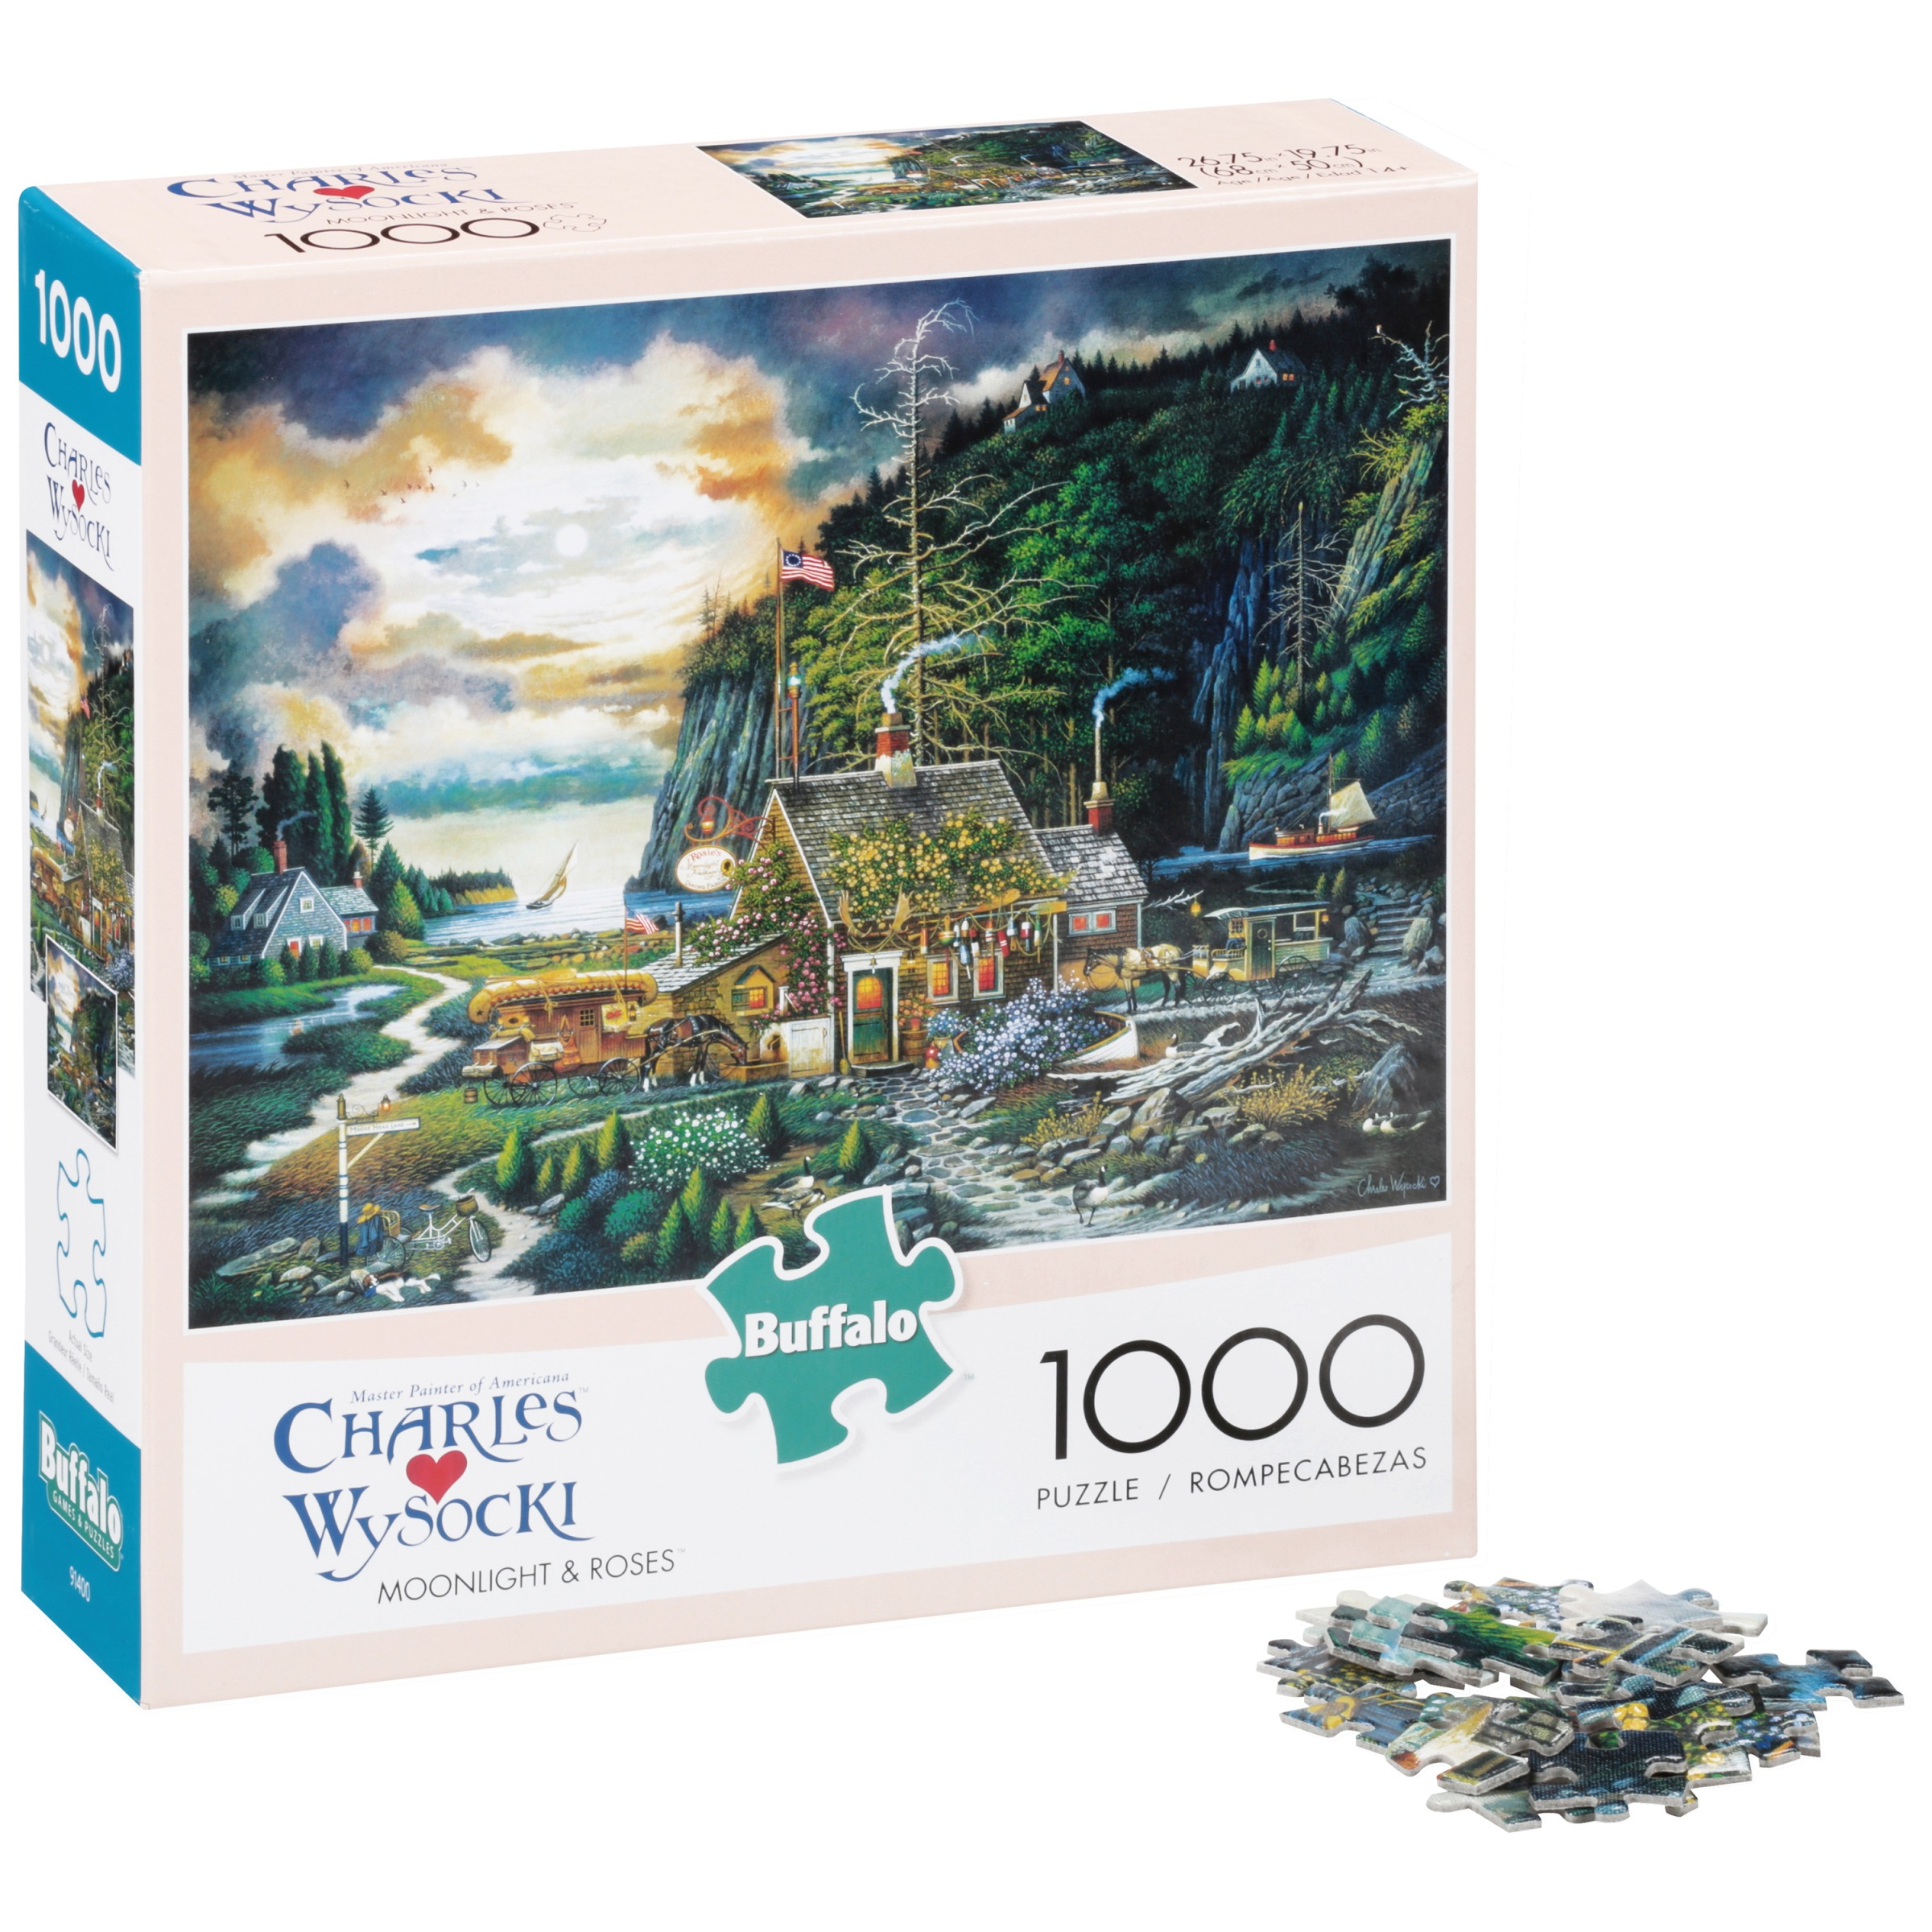 Buffalo Charles Wysocki Moonlight & Roses Puzzle 1000 pc Box by Buffalo Games, LLC